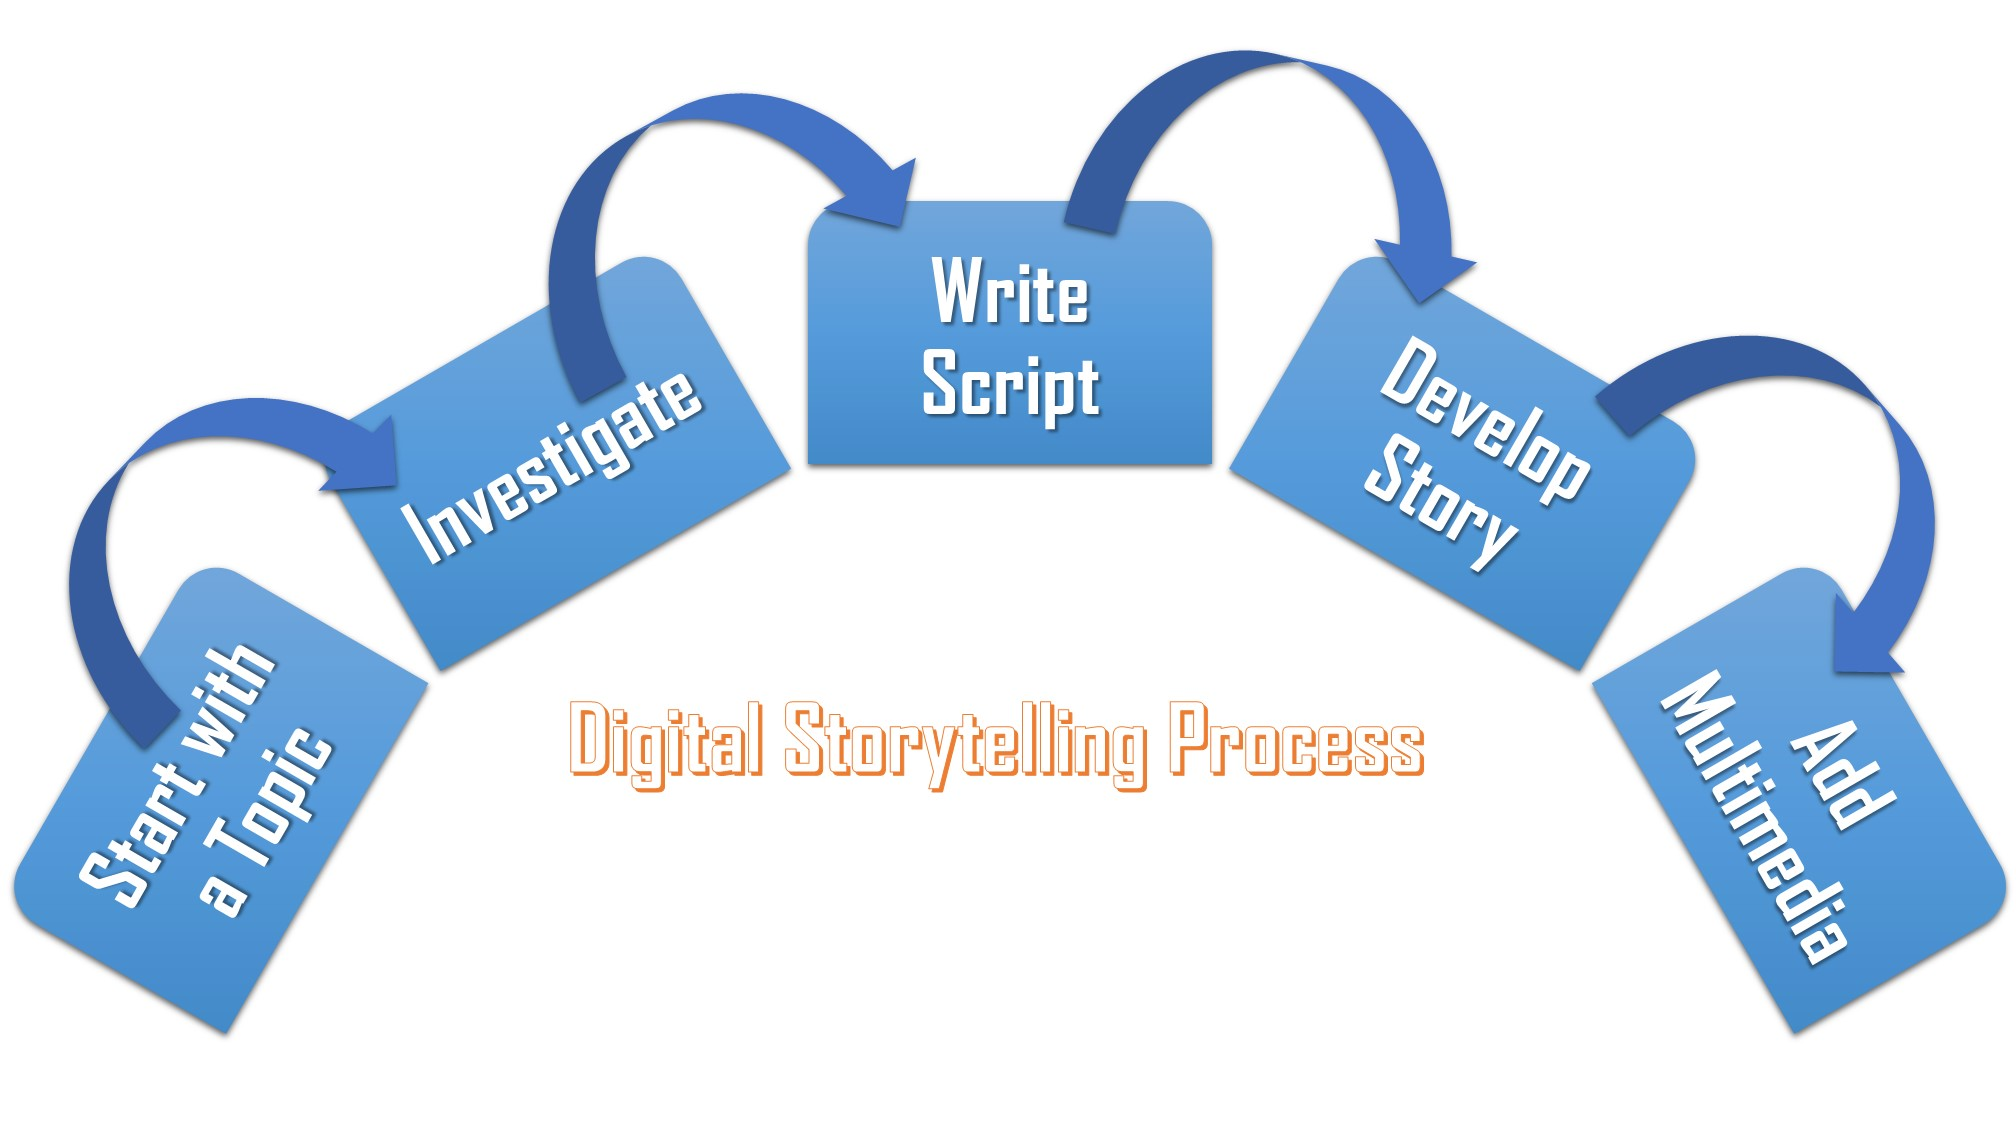 Figure depicting the digital storytelling process.